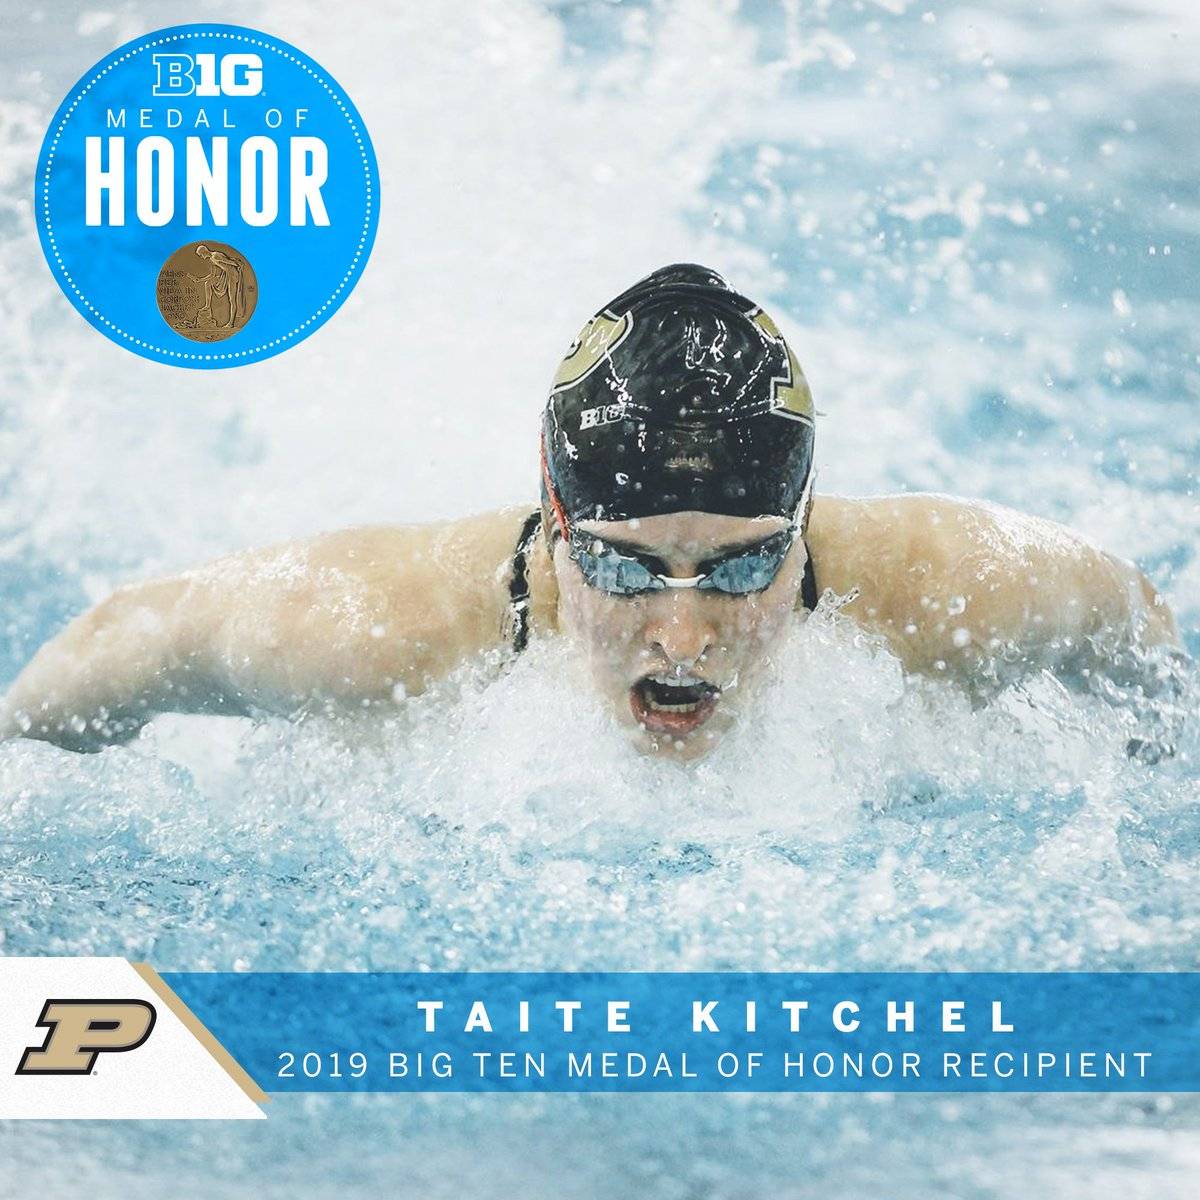 Taite Kitchel was part of a record-setting relay at the Big Ten Championships for three straight seasons. #B1GMOH